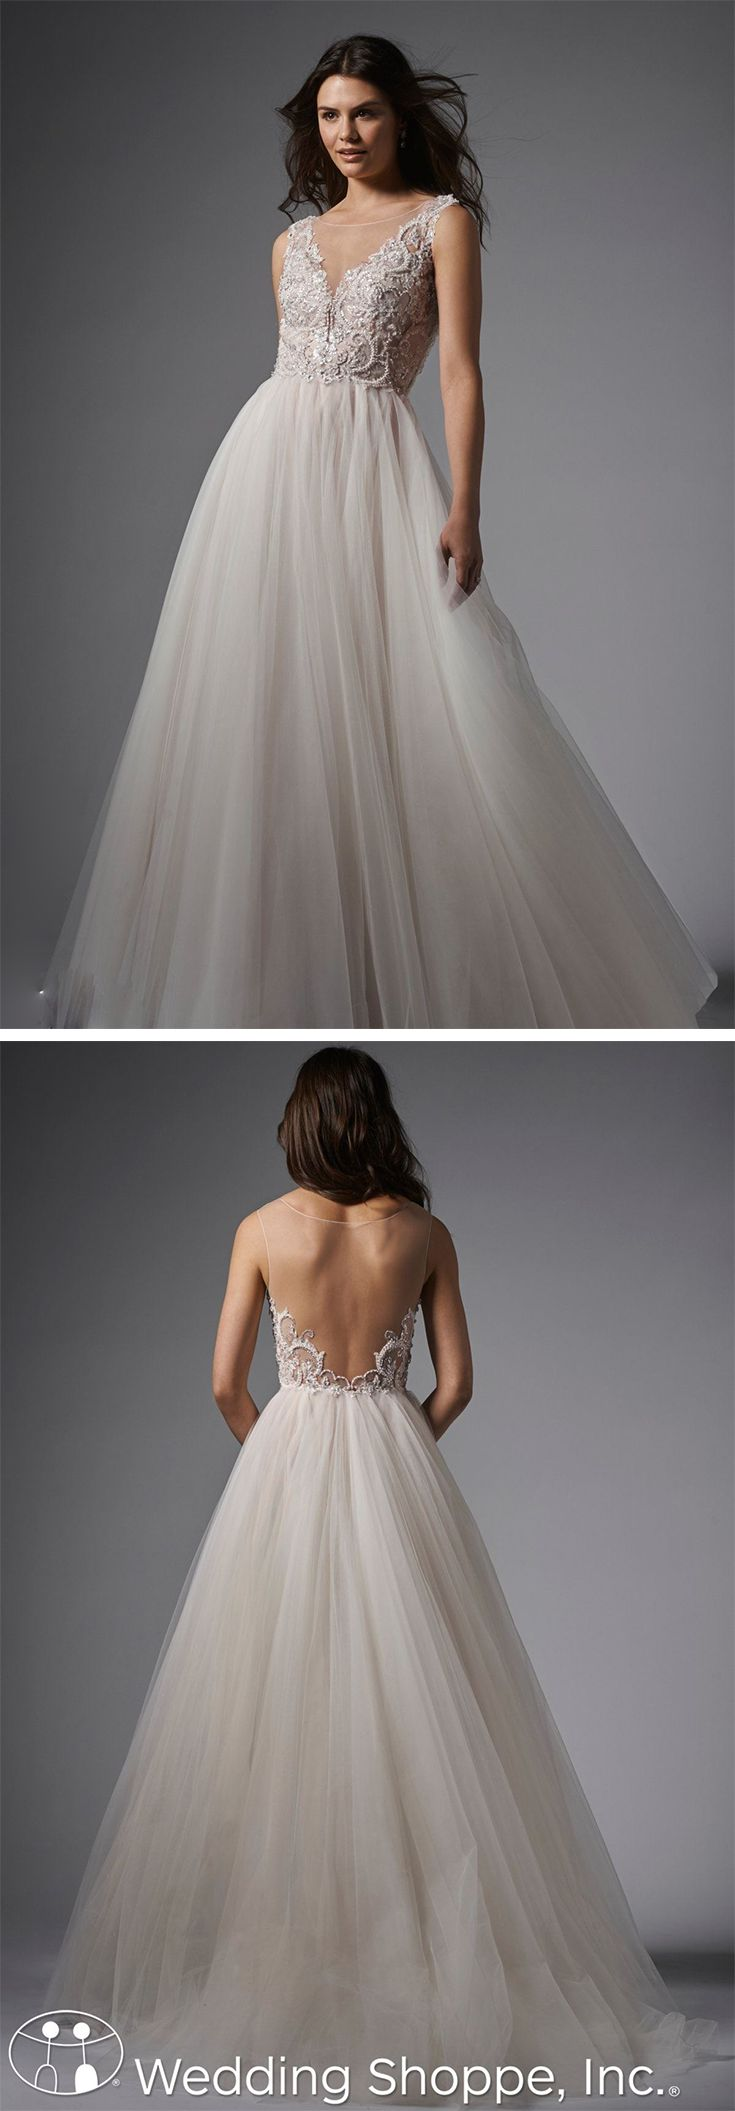 This wedding dress is gorgeous!  Absolutely love the back.